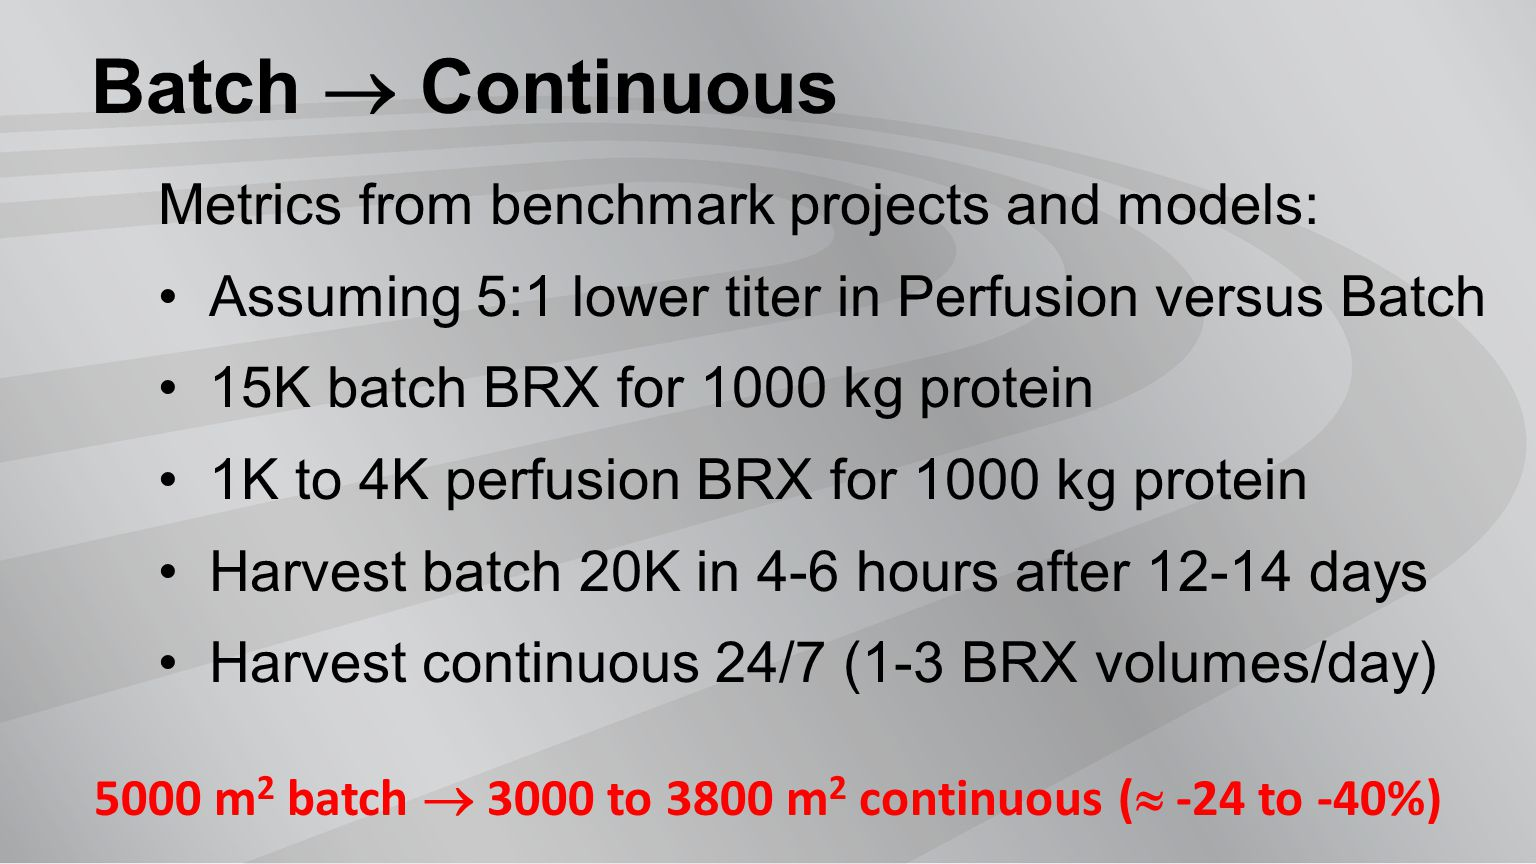 Batch  Continuous Metrics from benchmark projects and models: Assuming 5:1 lower titer in Perfusion versus Batch 15K batch BRX for 1000 kg protein 1K